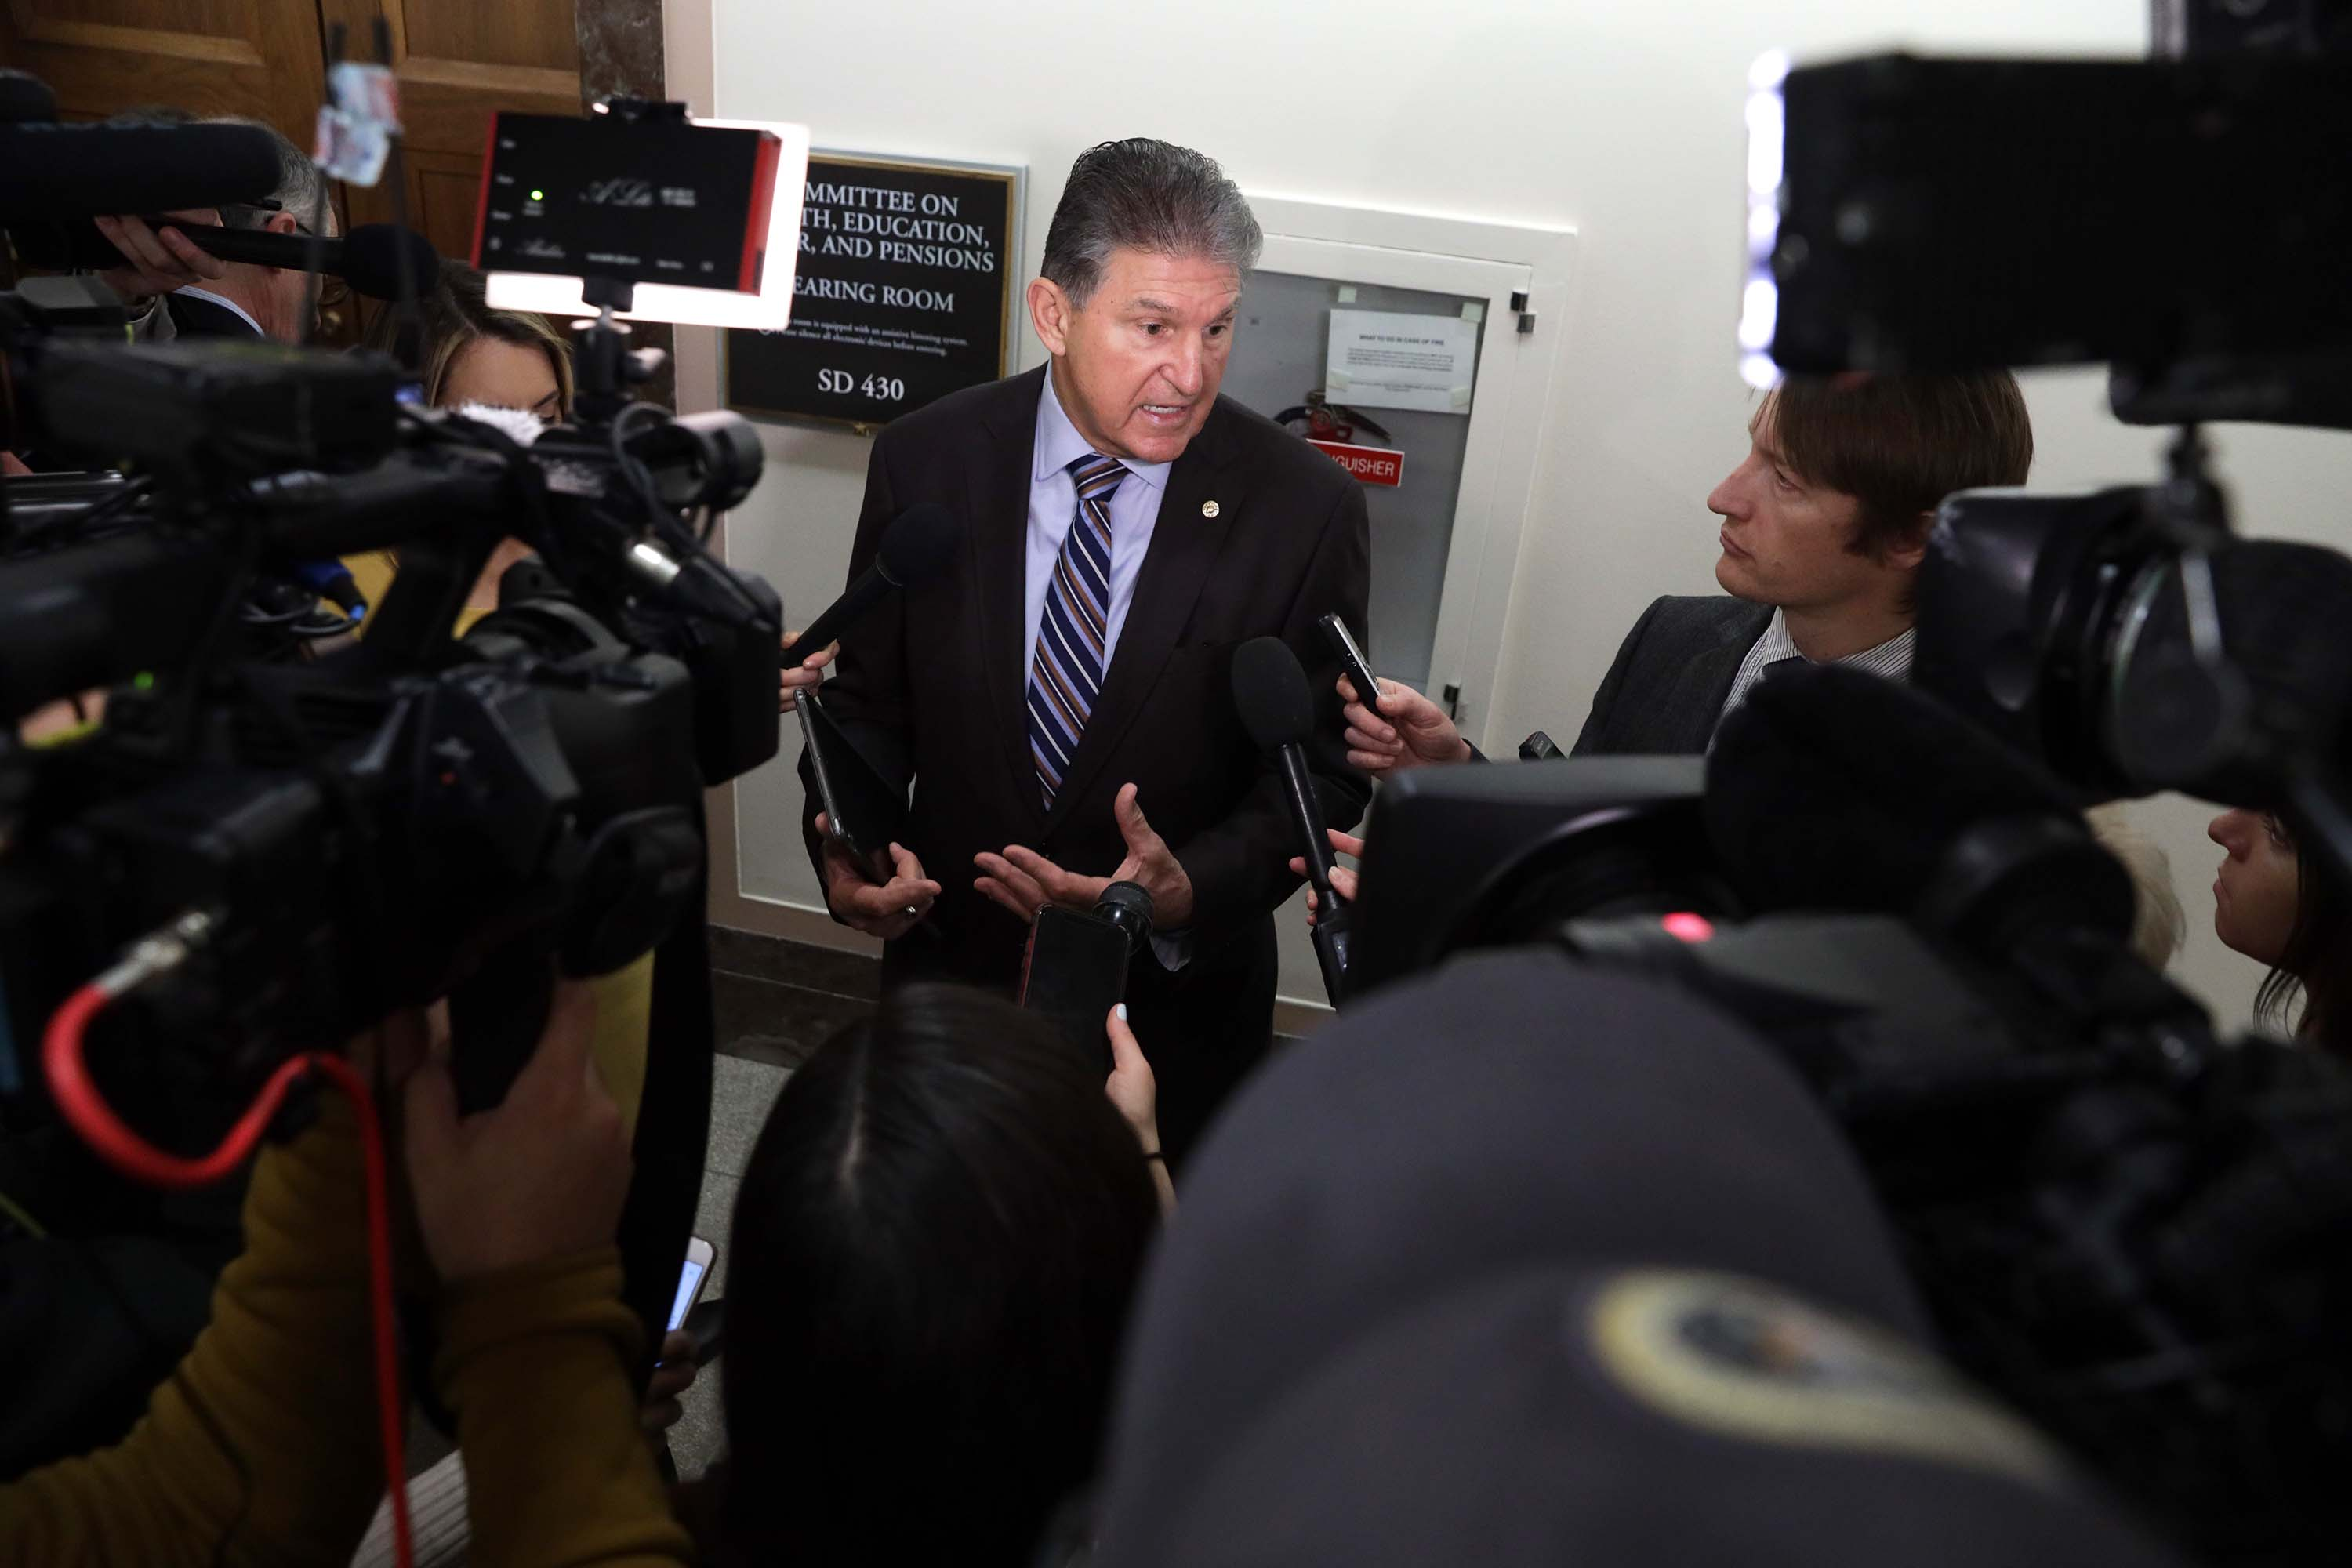 Sen. Joe Manchin speaks to the media after a briefing on the coronavirus outbreak on Capitol Hill in Washington, D.C., on March 12.